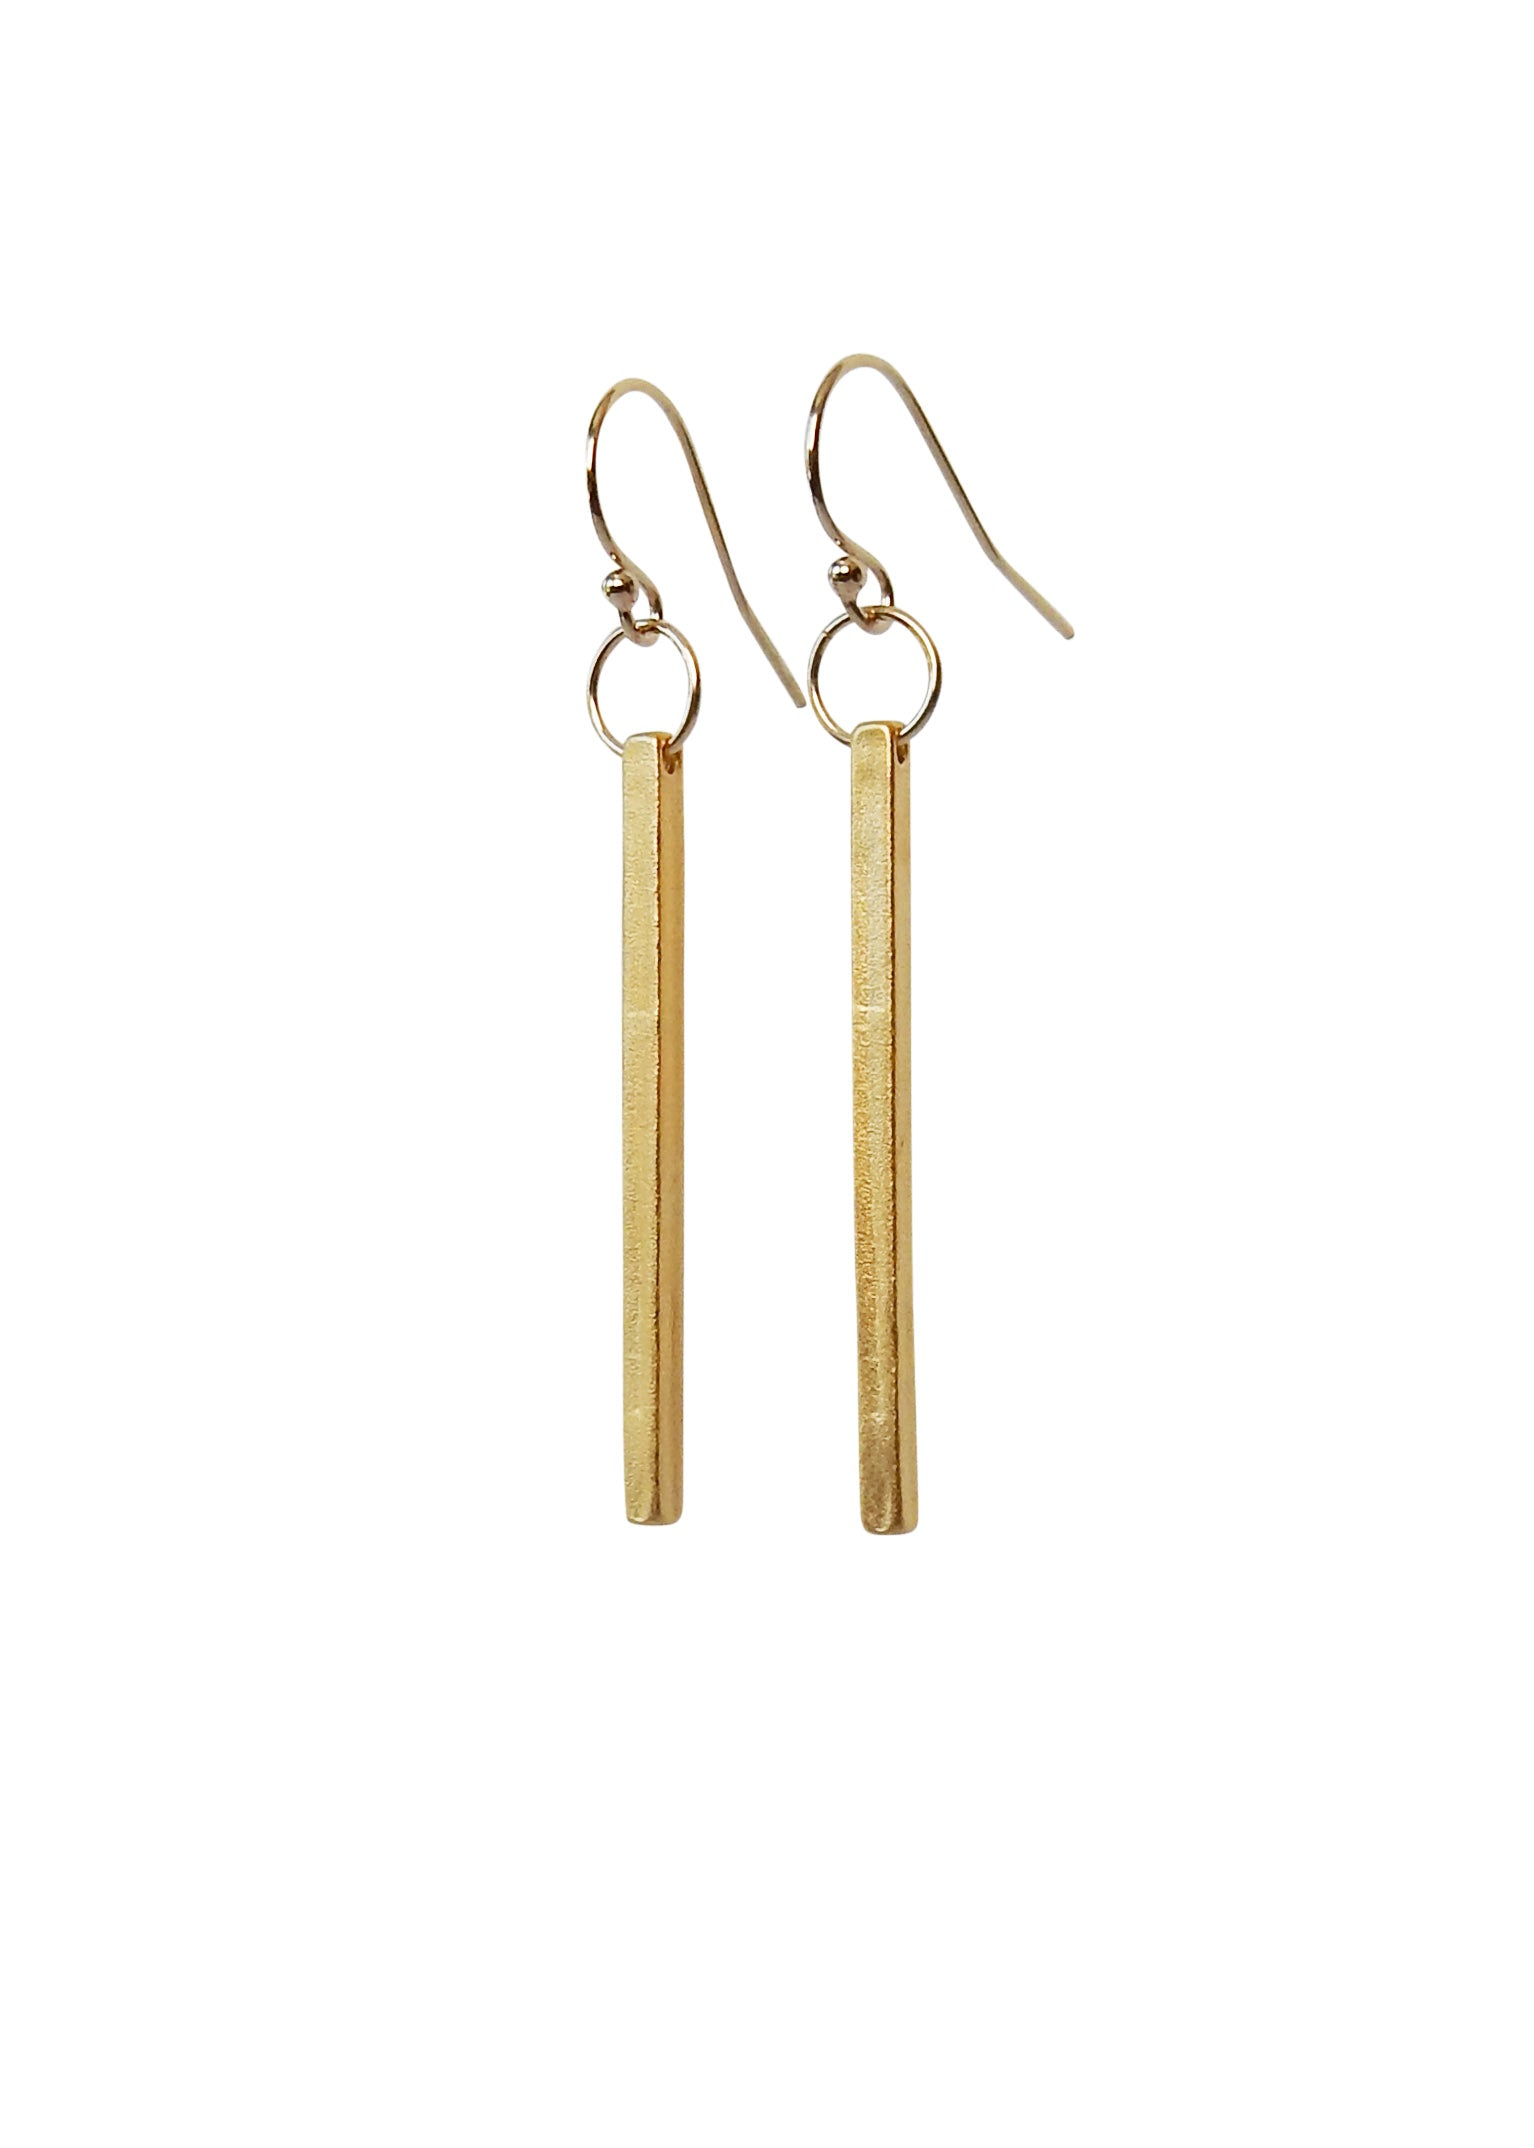 Apostle In House Collection Straight & Narrow Earrings, Gold